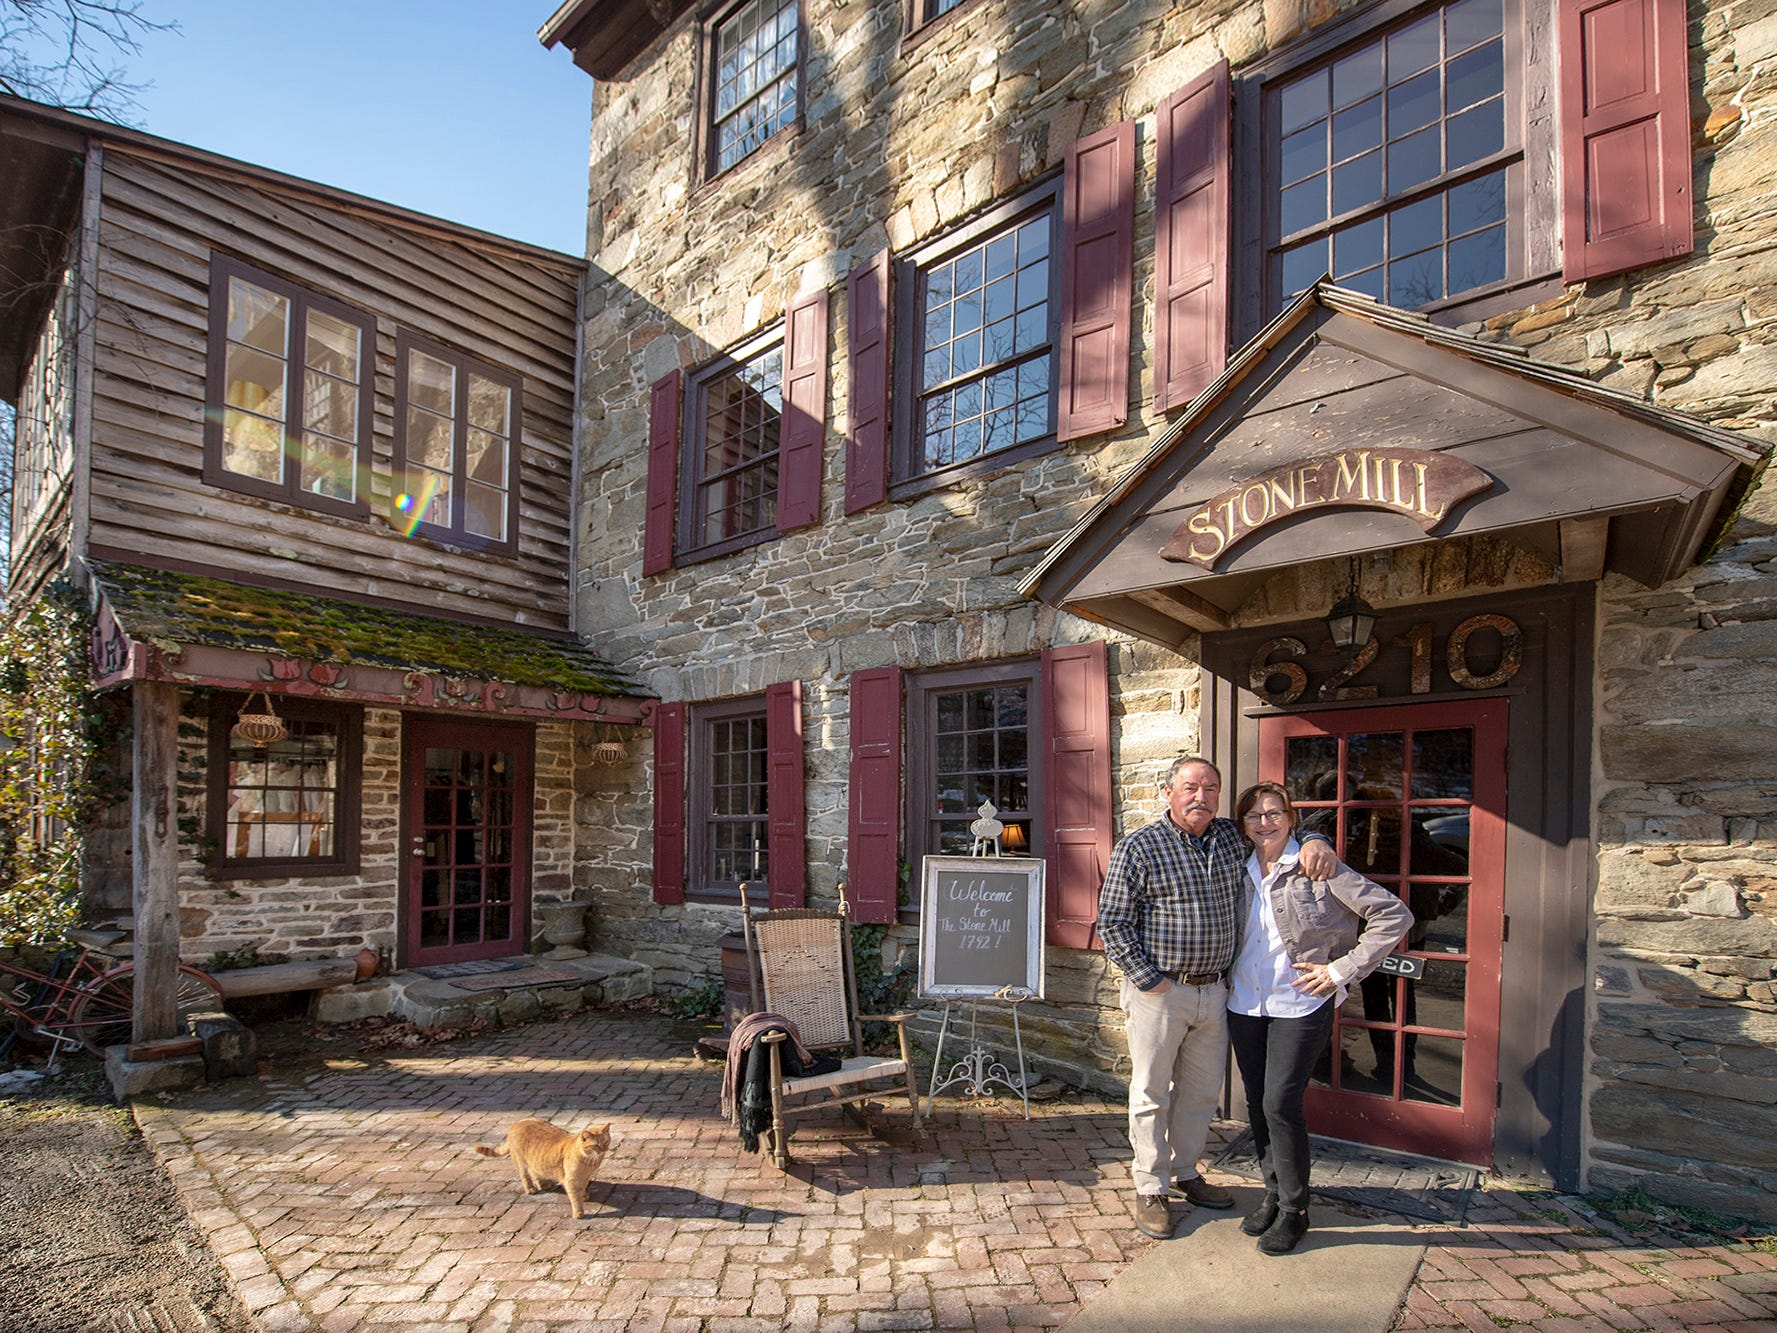 From the left, Joe and Pam Hepner in front of the Stone Mill 1792 Tuesday February 5, 2019.